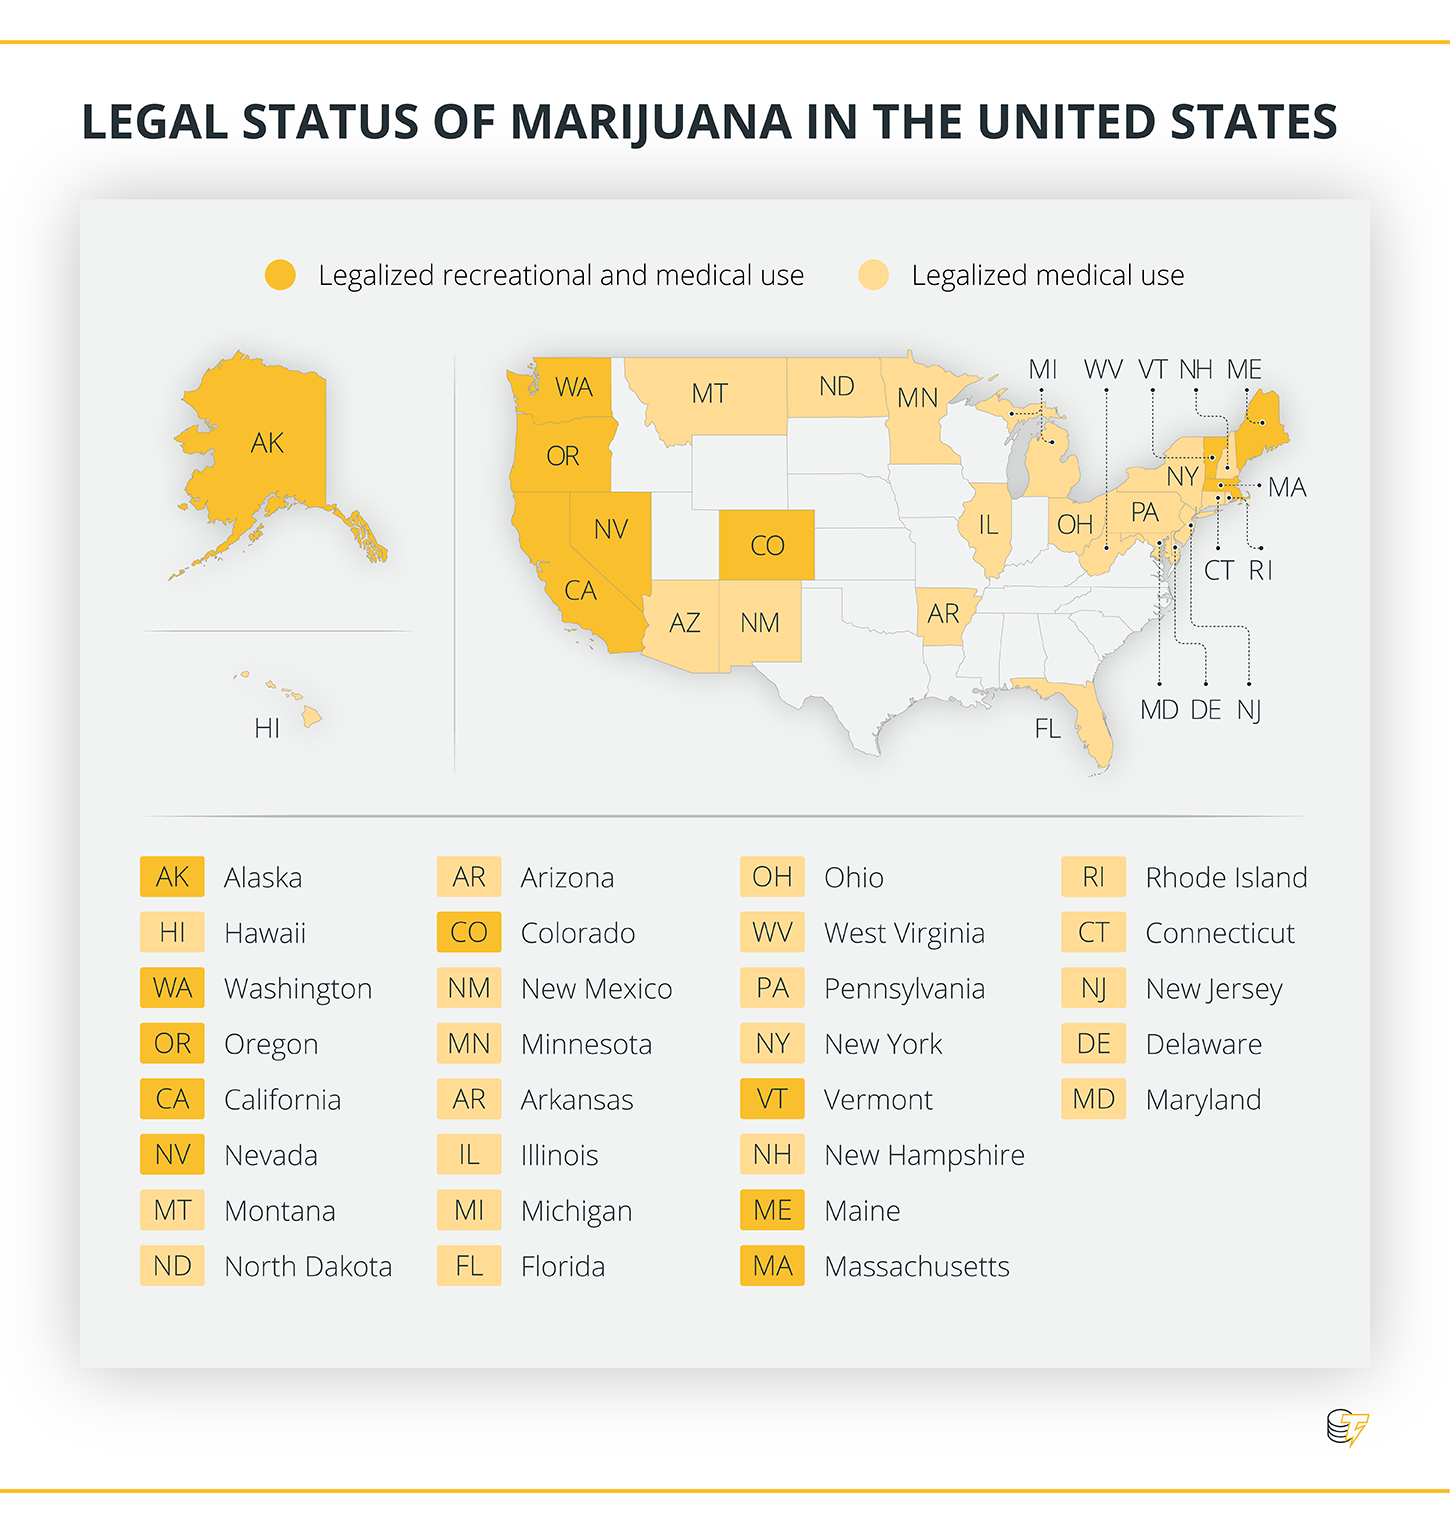 Legal status of marijuana in the US